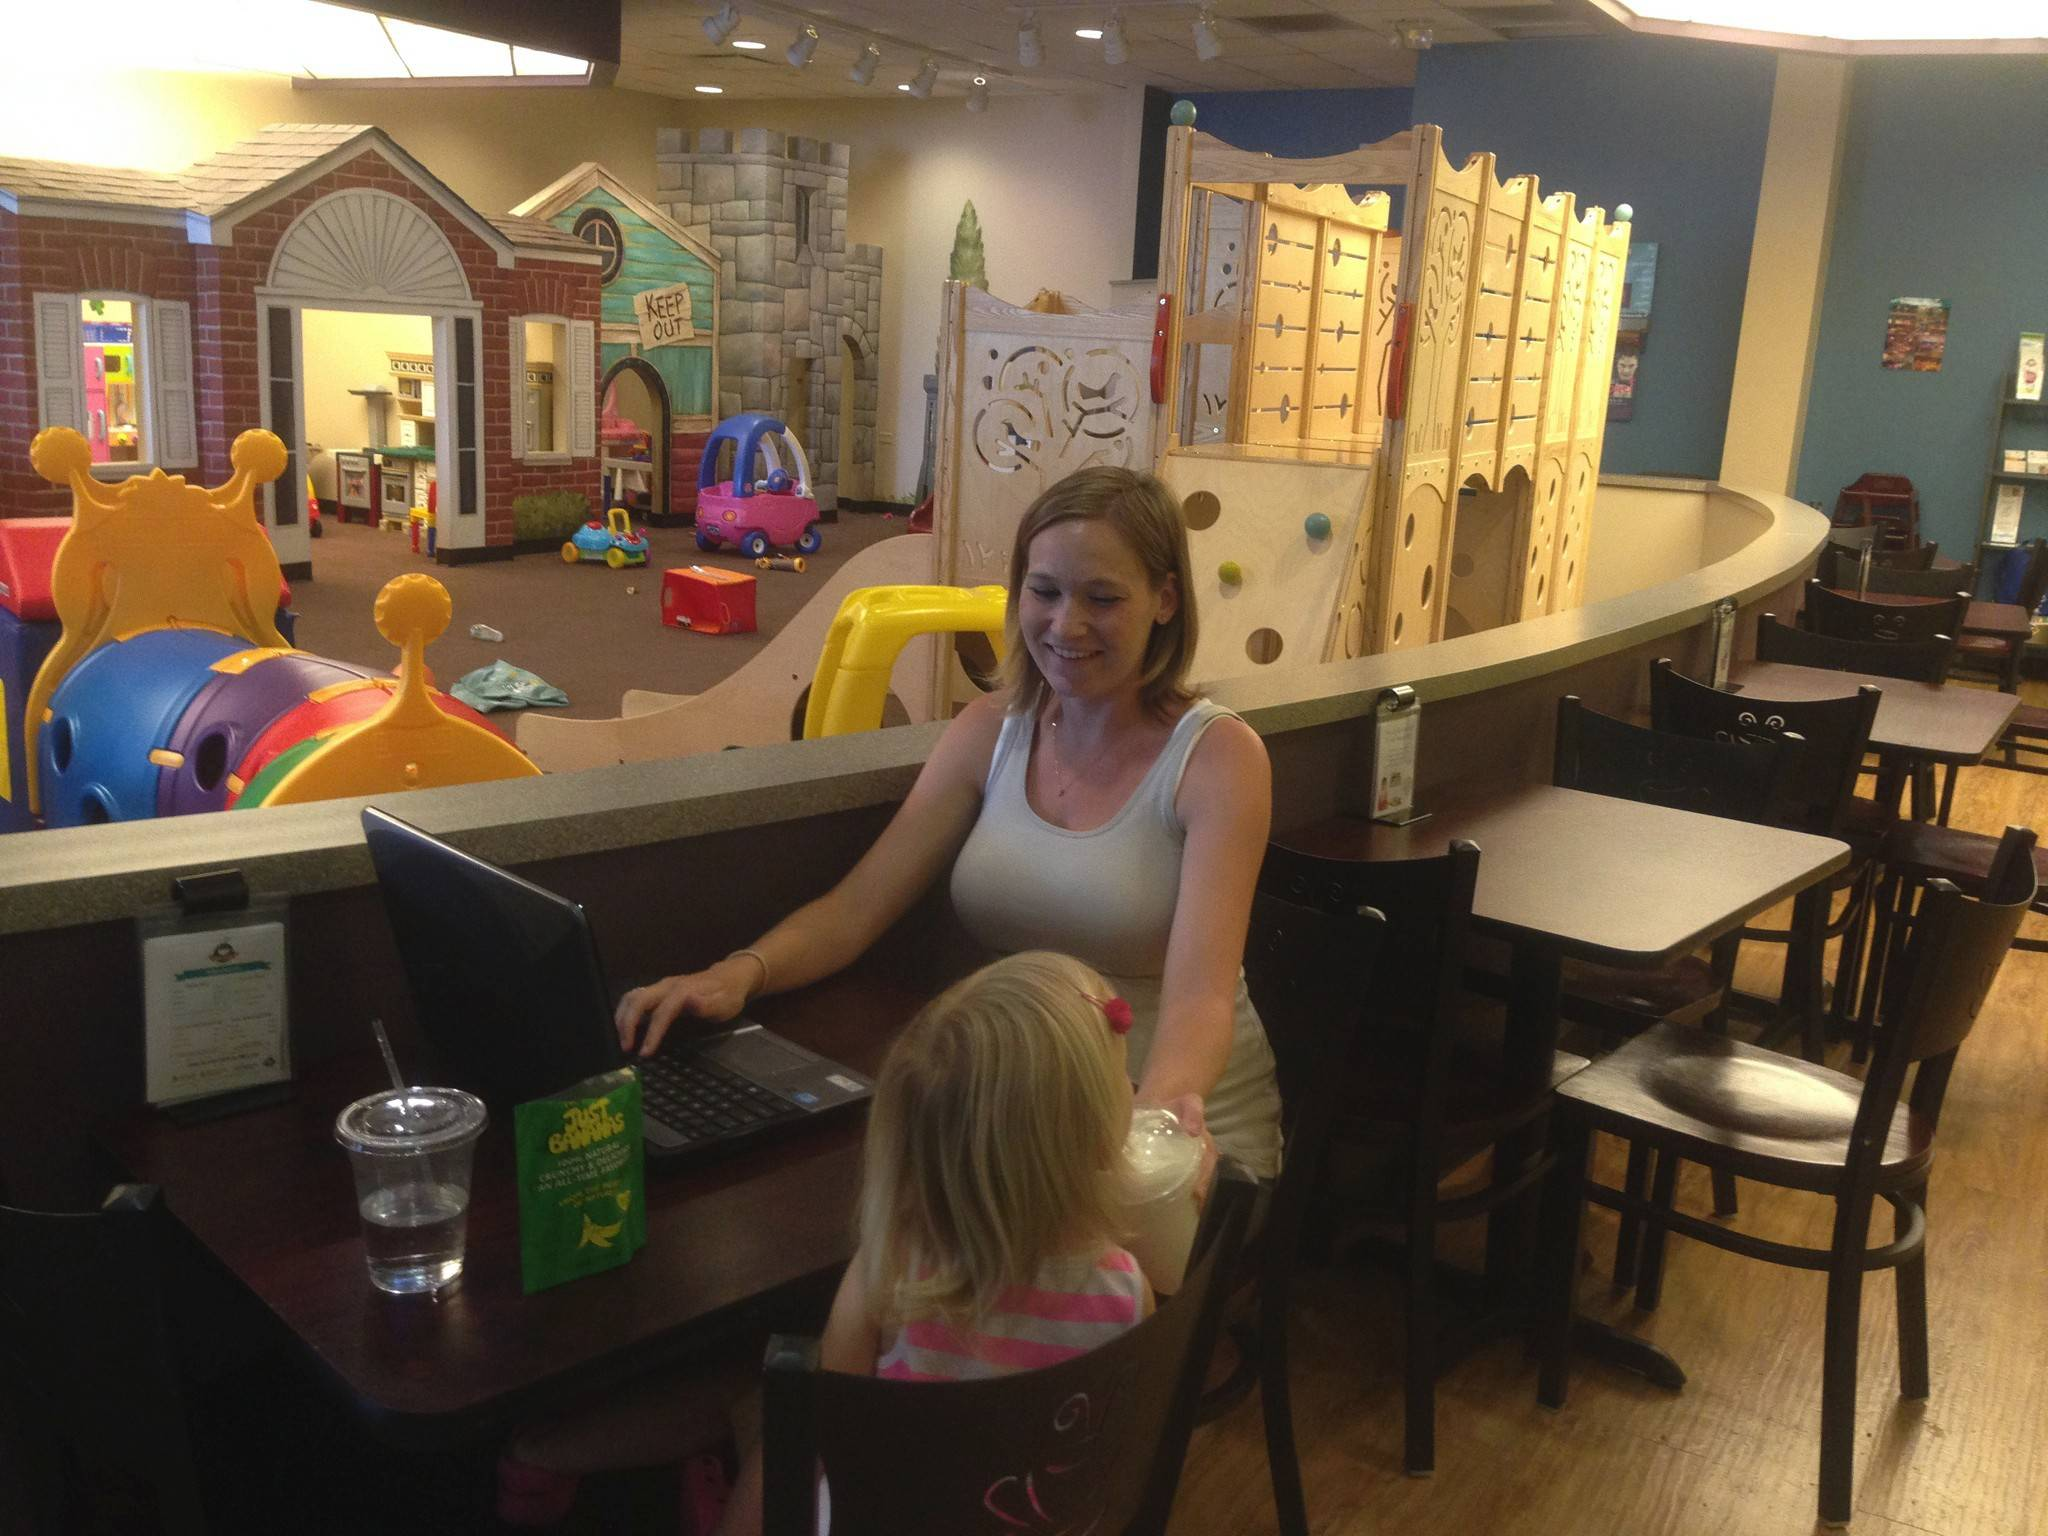 Jennifer Kowalski of Bolingbrook enjoys visiting Cafe N Play in Naperville with her daughter, Brenna.